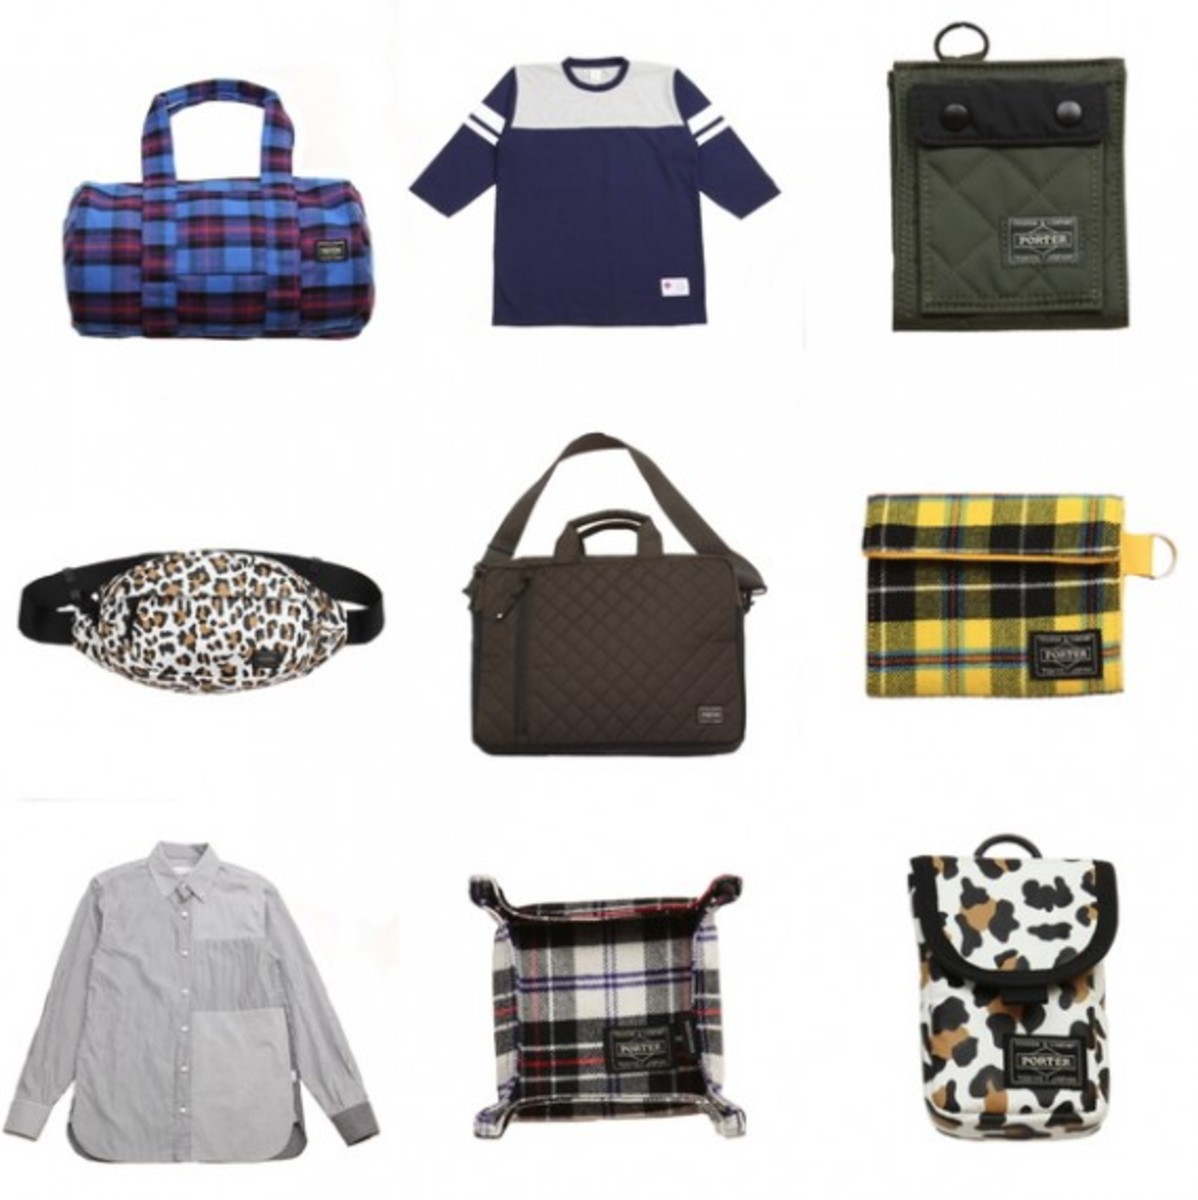 head-porter-aw-2010-collection-preview-1